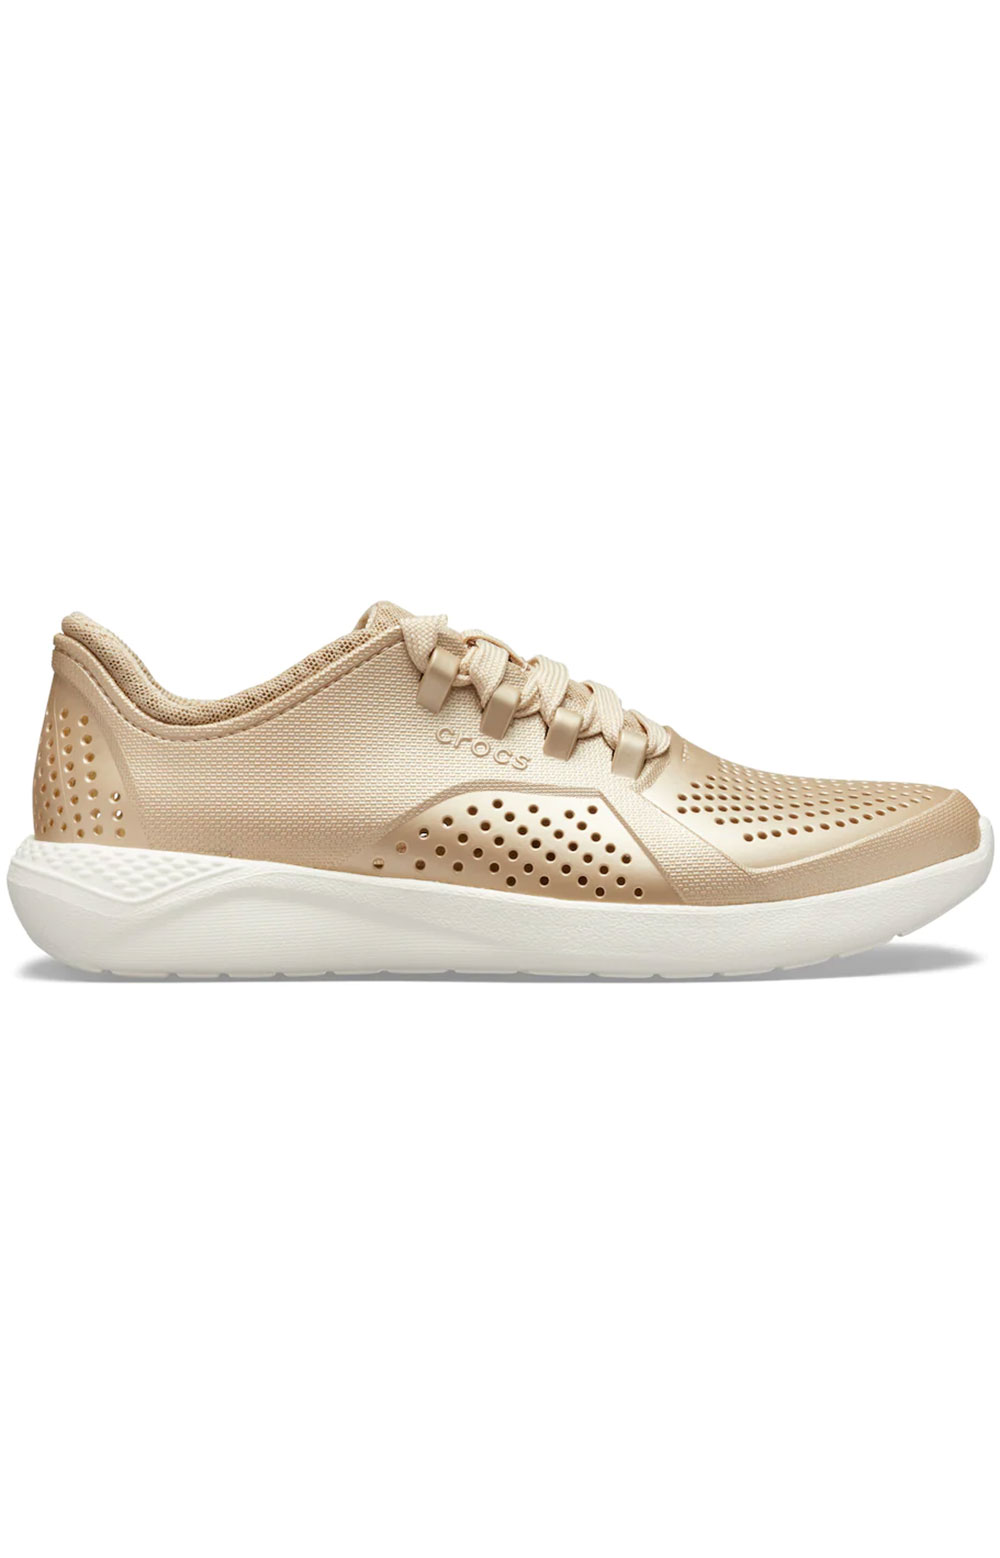 LiteRide Pacer Shoes - Metallic Champagne